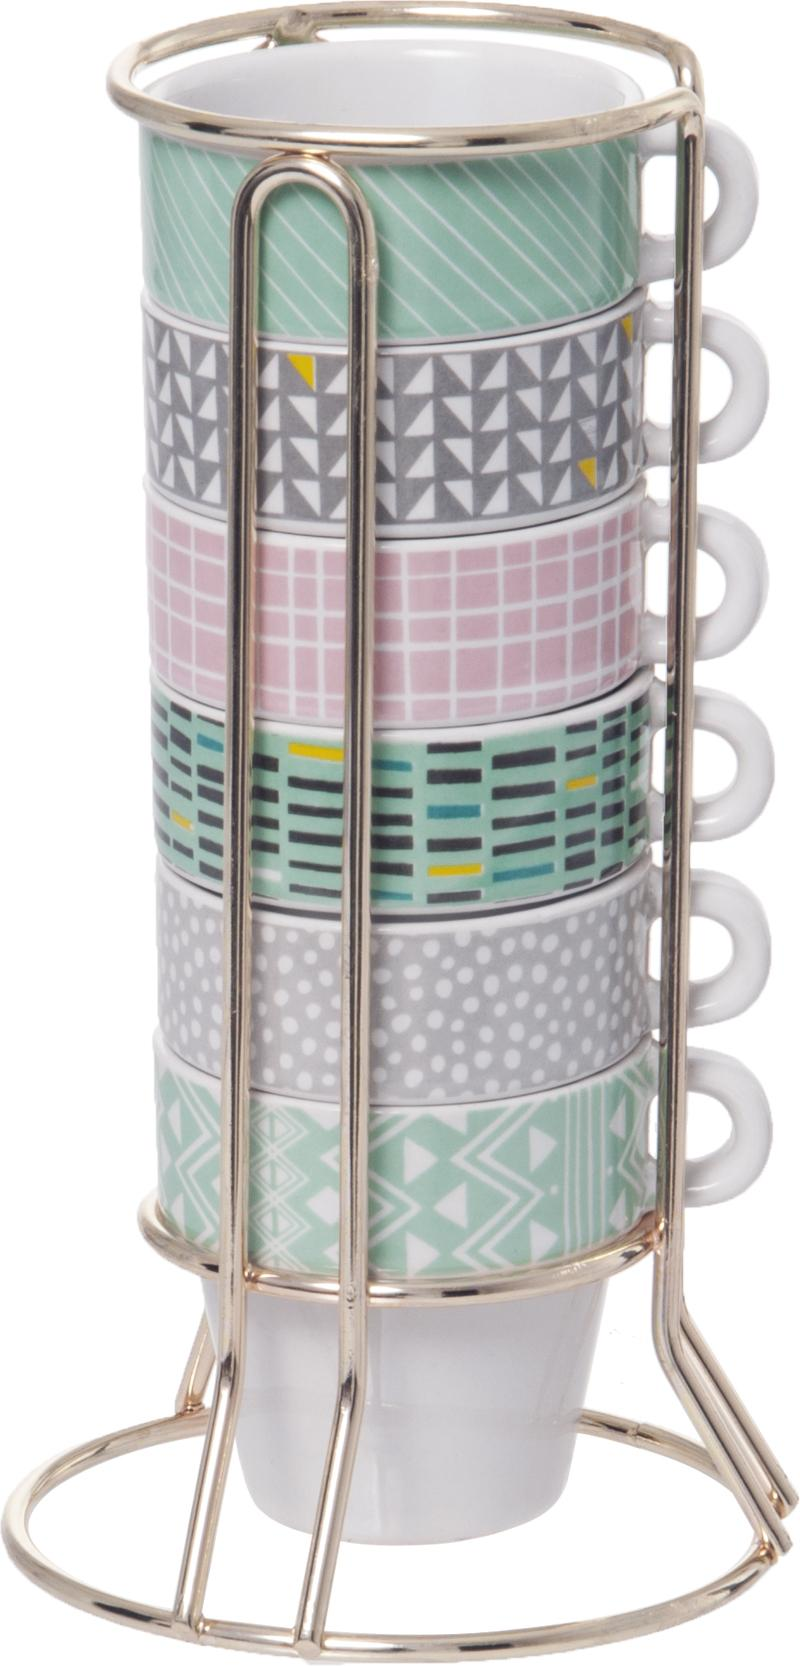 Ristretto toren Aztec - Multicolour - Present Time